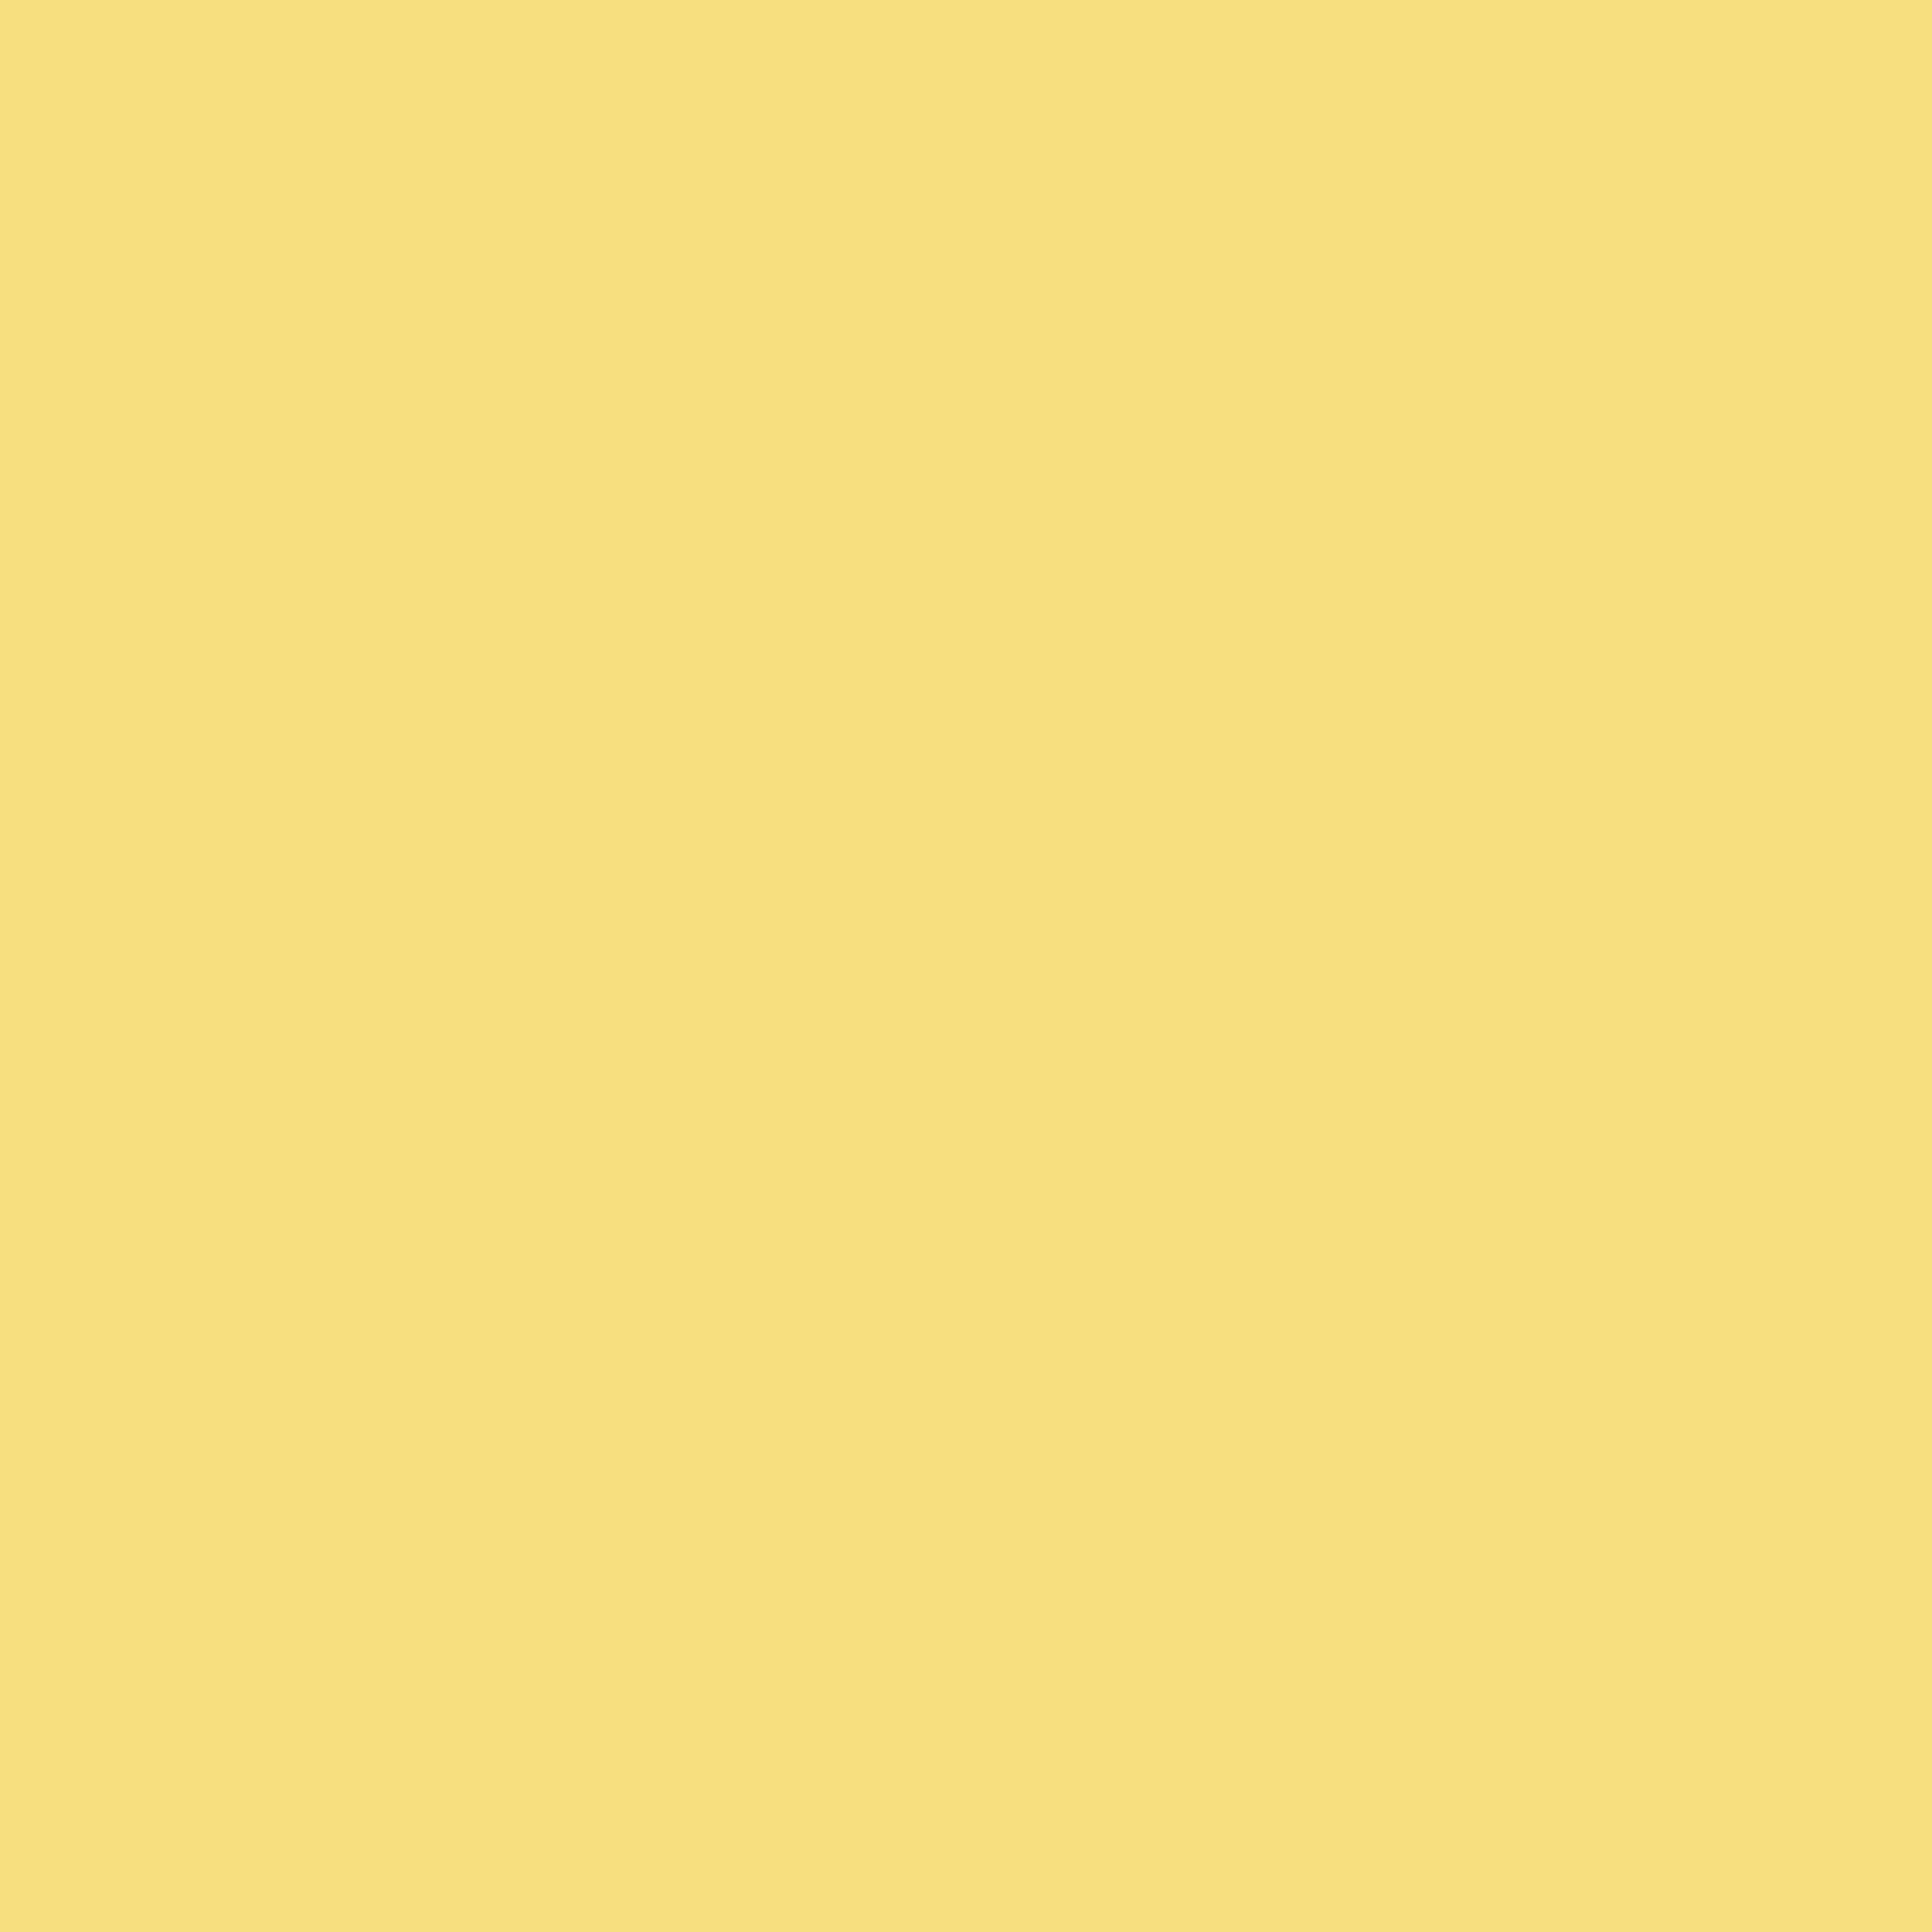 2732x2732 Mellow Yellow Solid Color Background